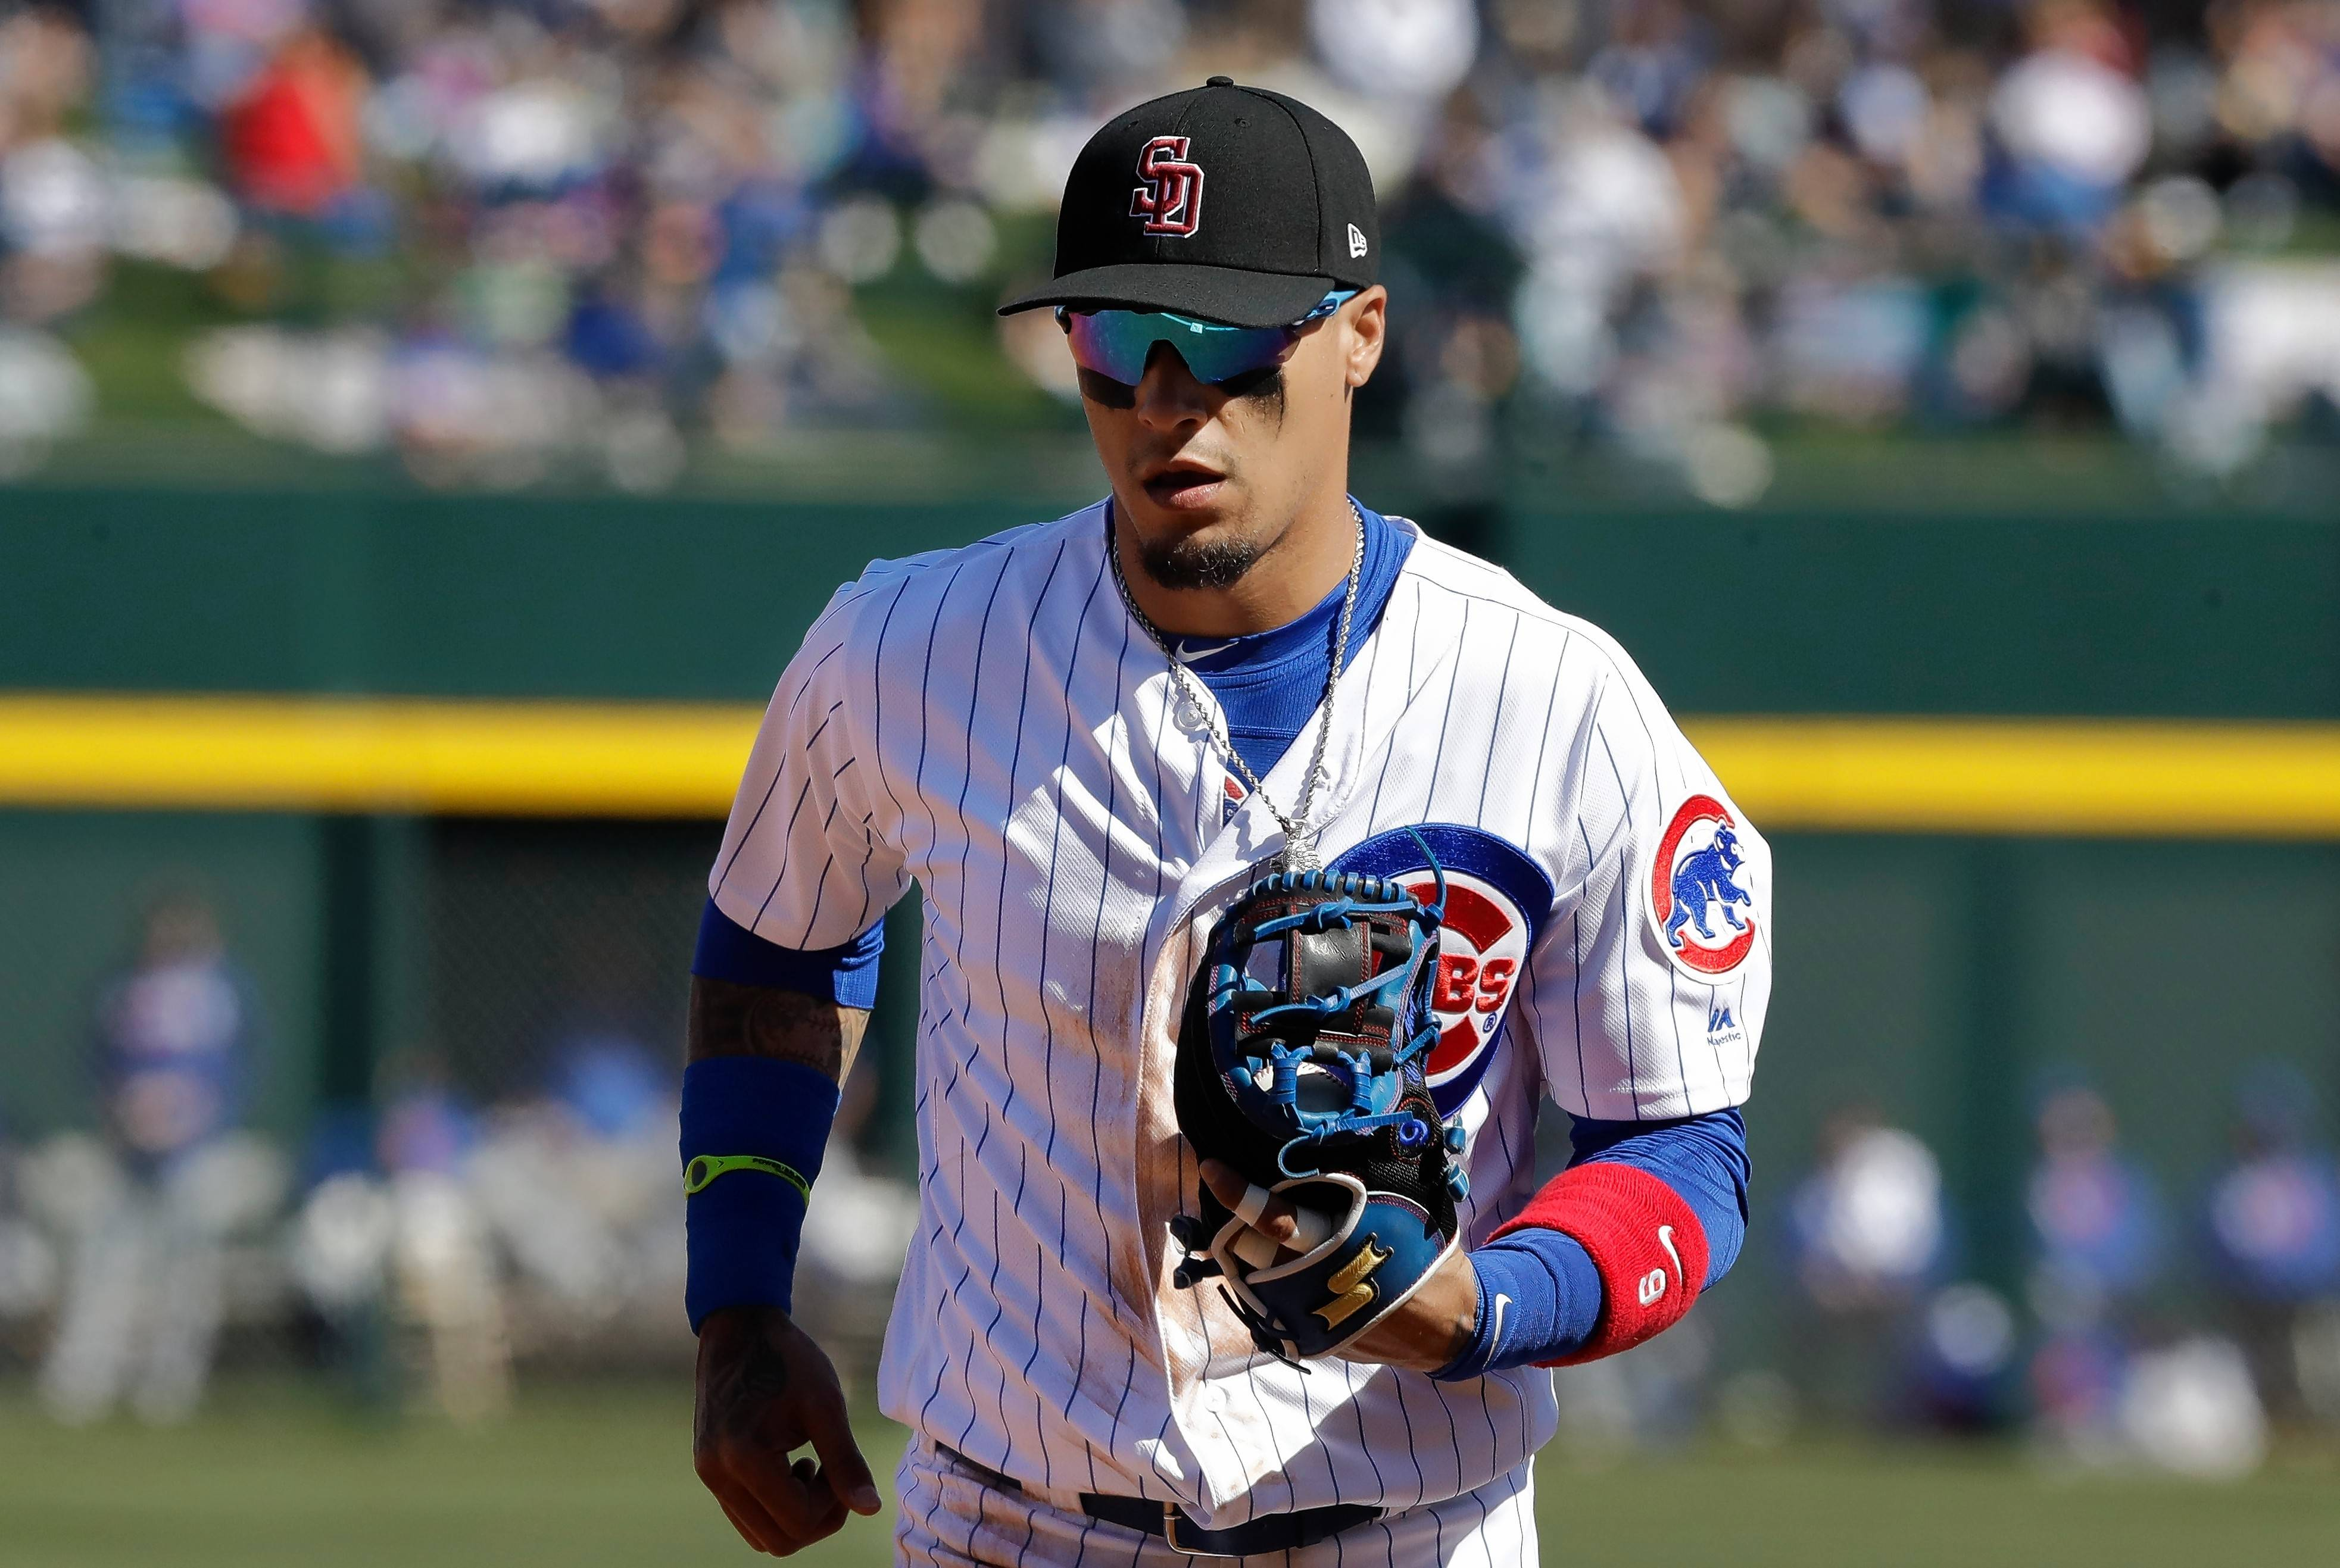 Chicago Cubs' Javier Baez made two strong defense plays against the Texas Rangers on Saturday during the team's second Cactus League game of the spring in Mesa, Ariz.